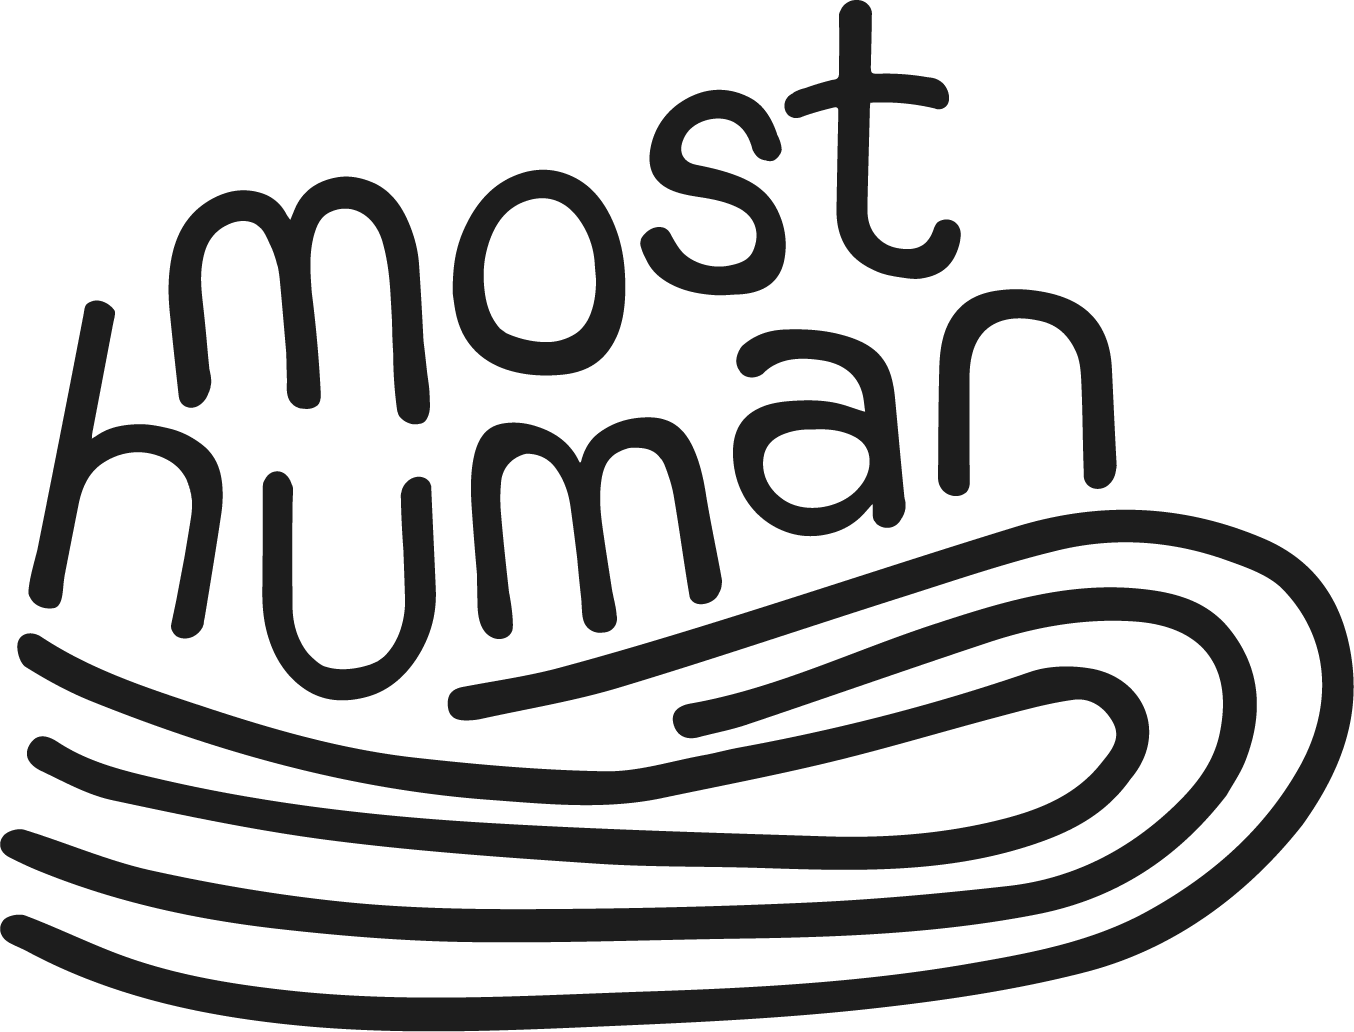 """The words """"Most Human"""" appear atop an organic wave shape."""